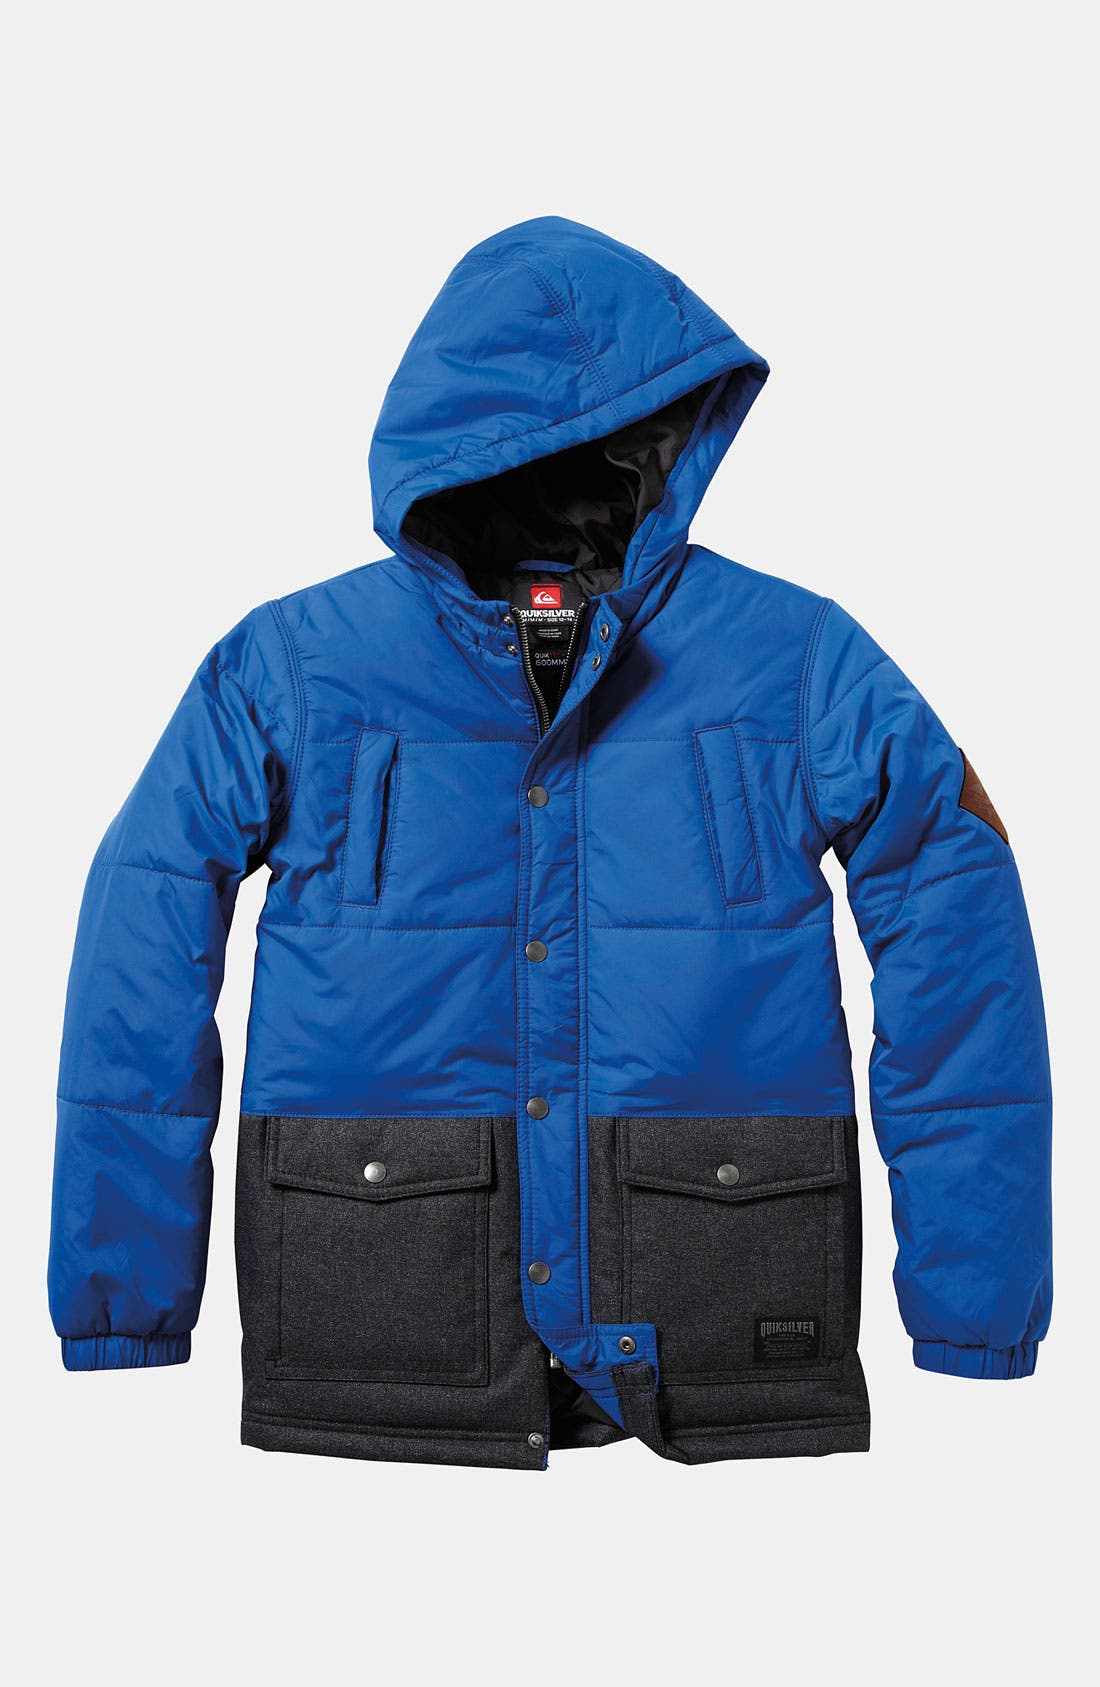 Main Image - Quiksilver 'Side Swipe' Jacket (Big Boys)